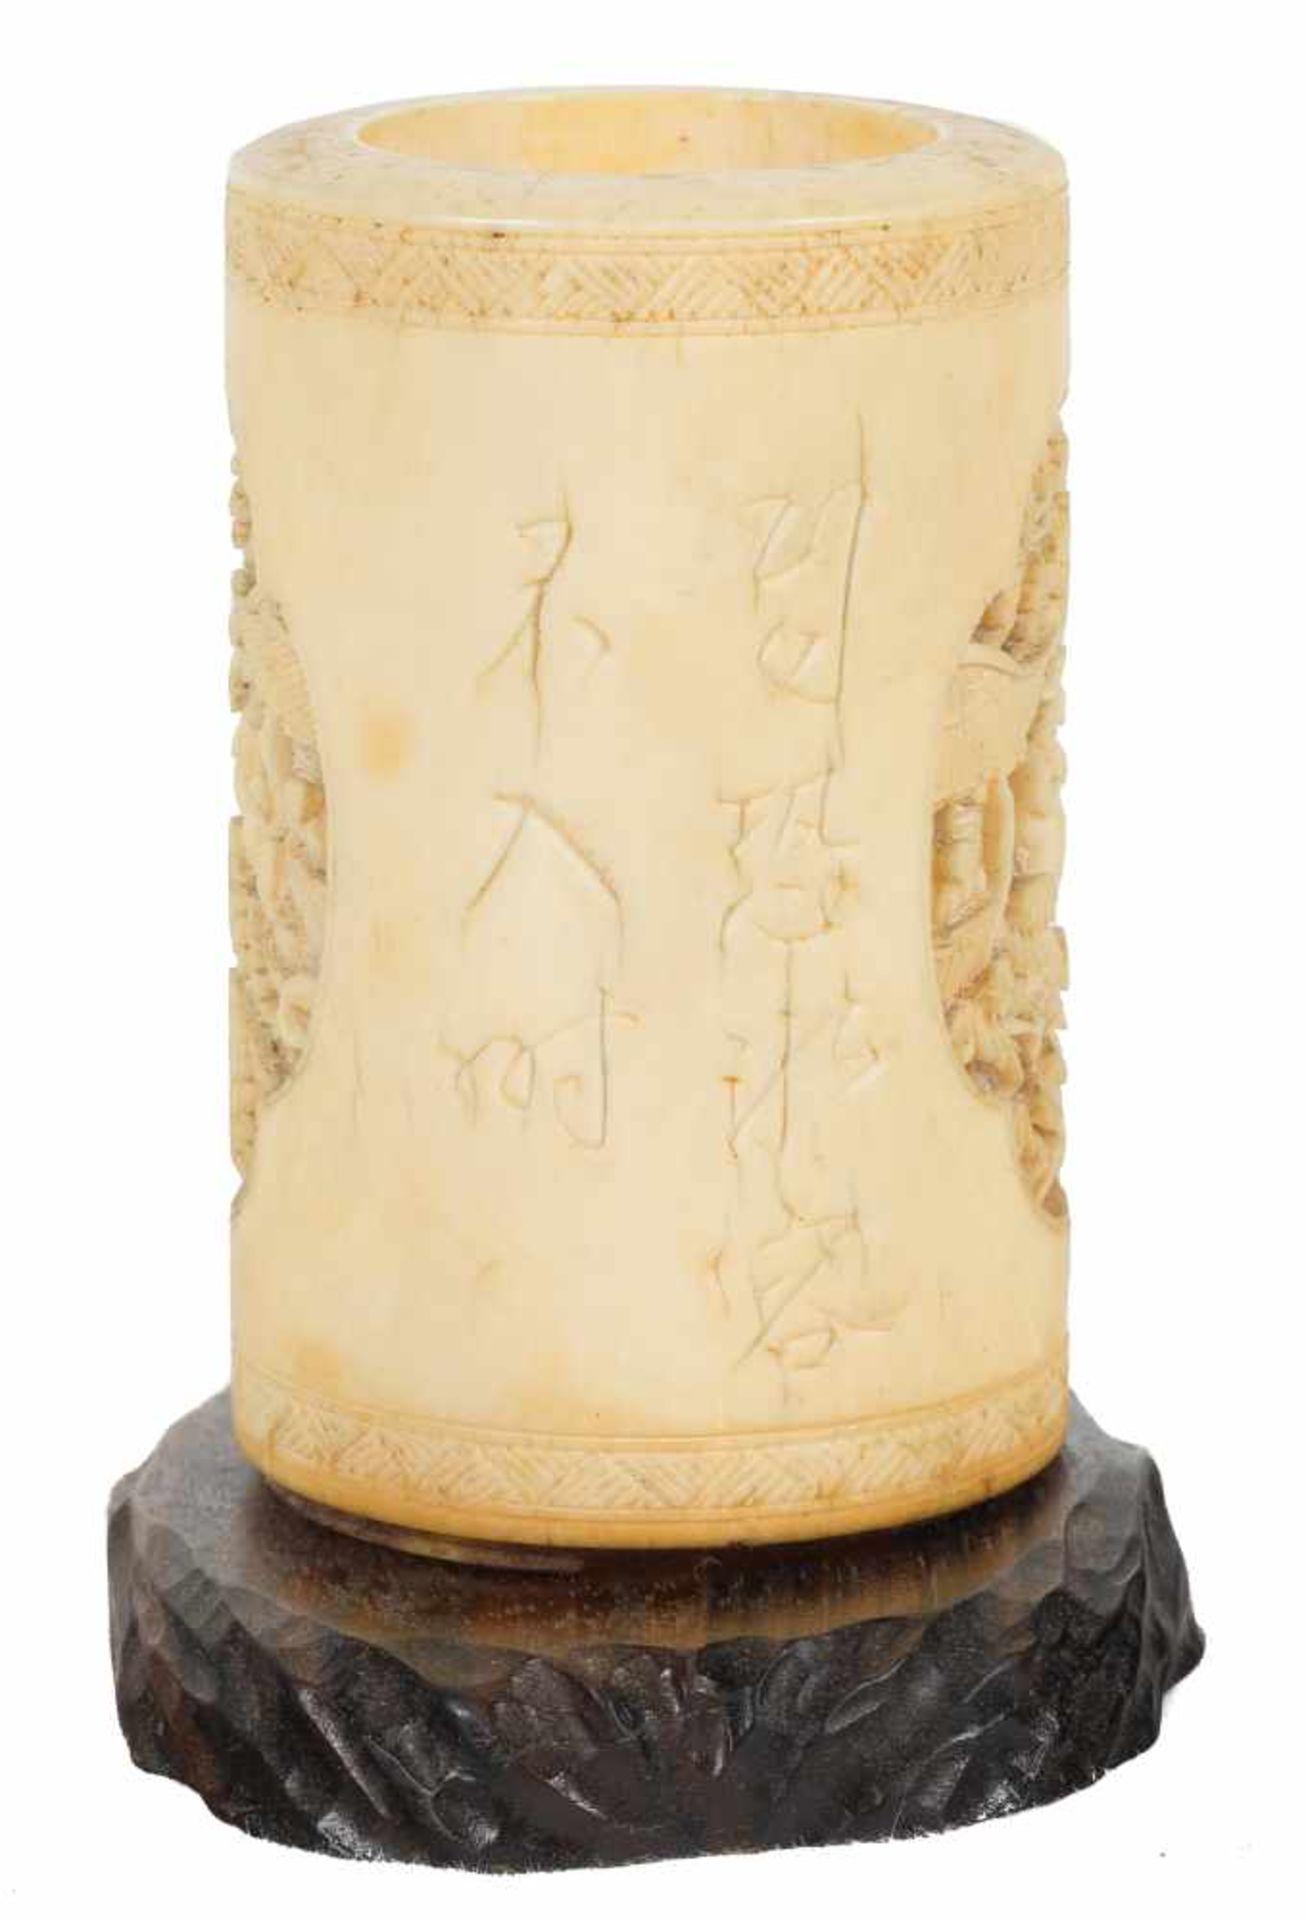 Los 3 - A fine ivory brushpot of cylindrical form. Qing dynasty, 19th century.Deeply carved with schola